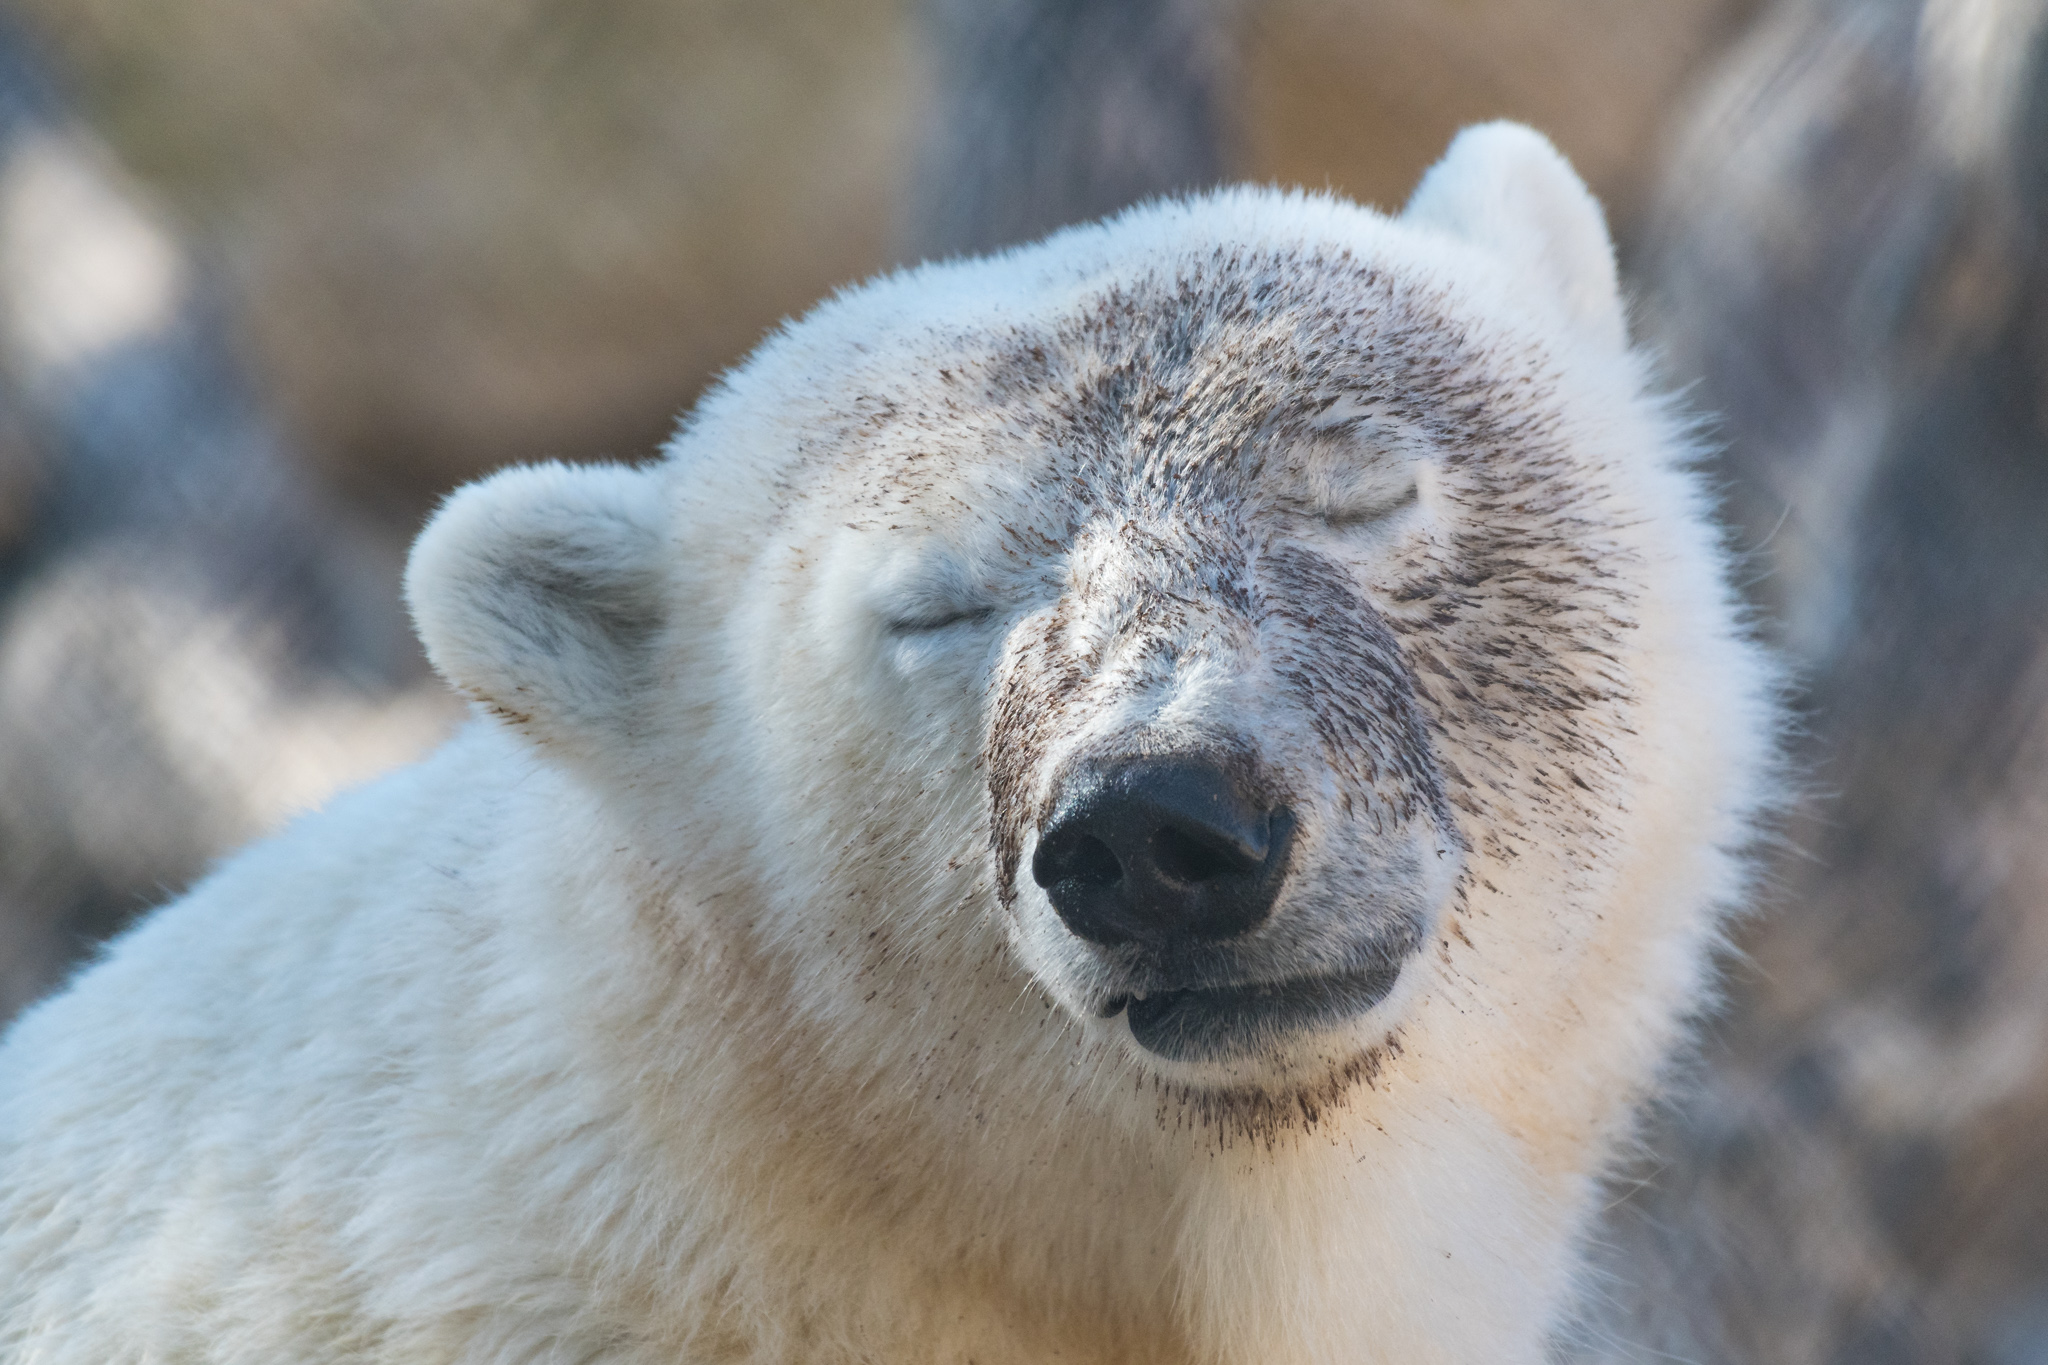 """At the """"Journey to Churchill"""" exhibit. My plan was always to go north to Churchill to see the polar bears. But the one train line to Churchill had flooded that year and flights were way too expensive. So this was the best I could do."""